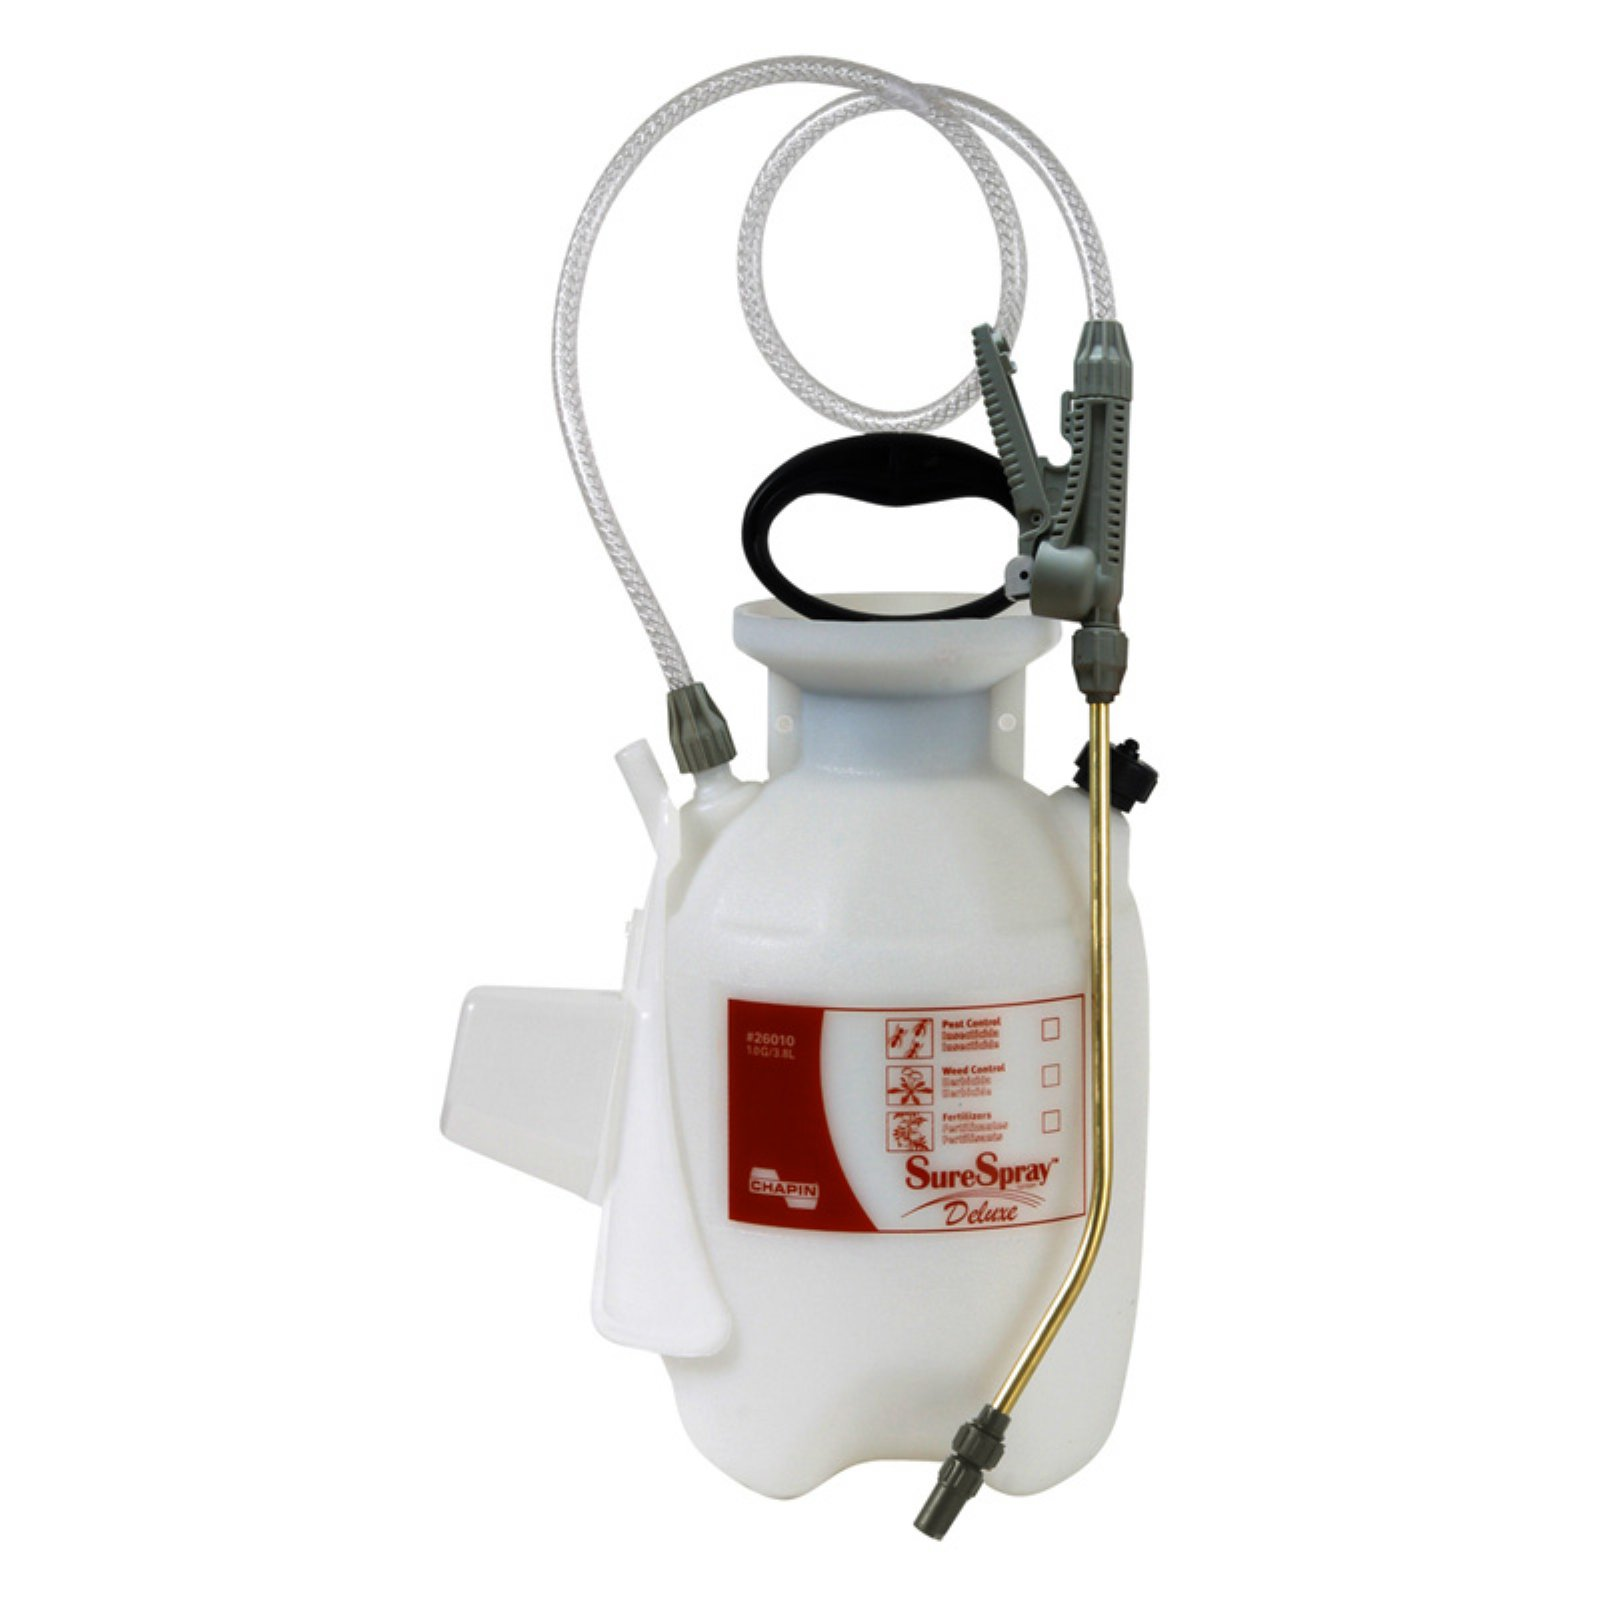 Chapin Sprayers 26010 DLX 1 Gallon SureSpray Deluxe Sprayer by Chapin Sprayers